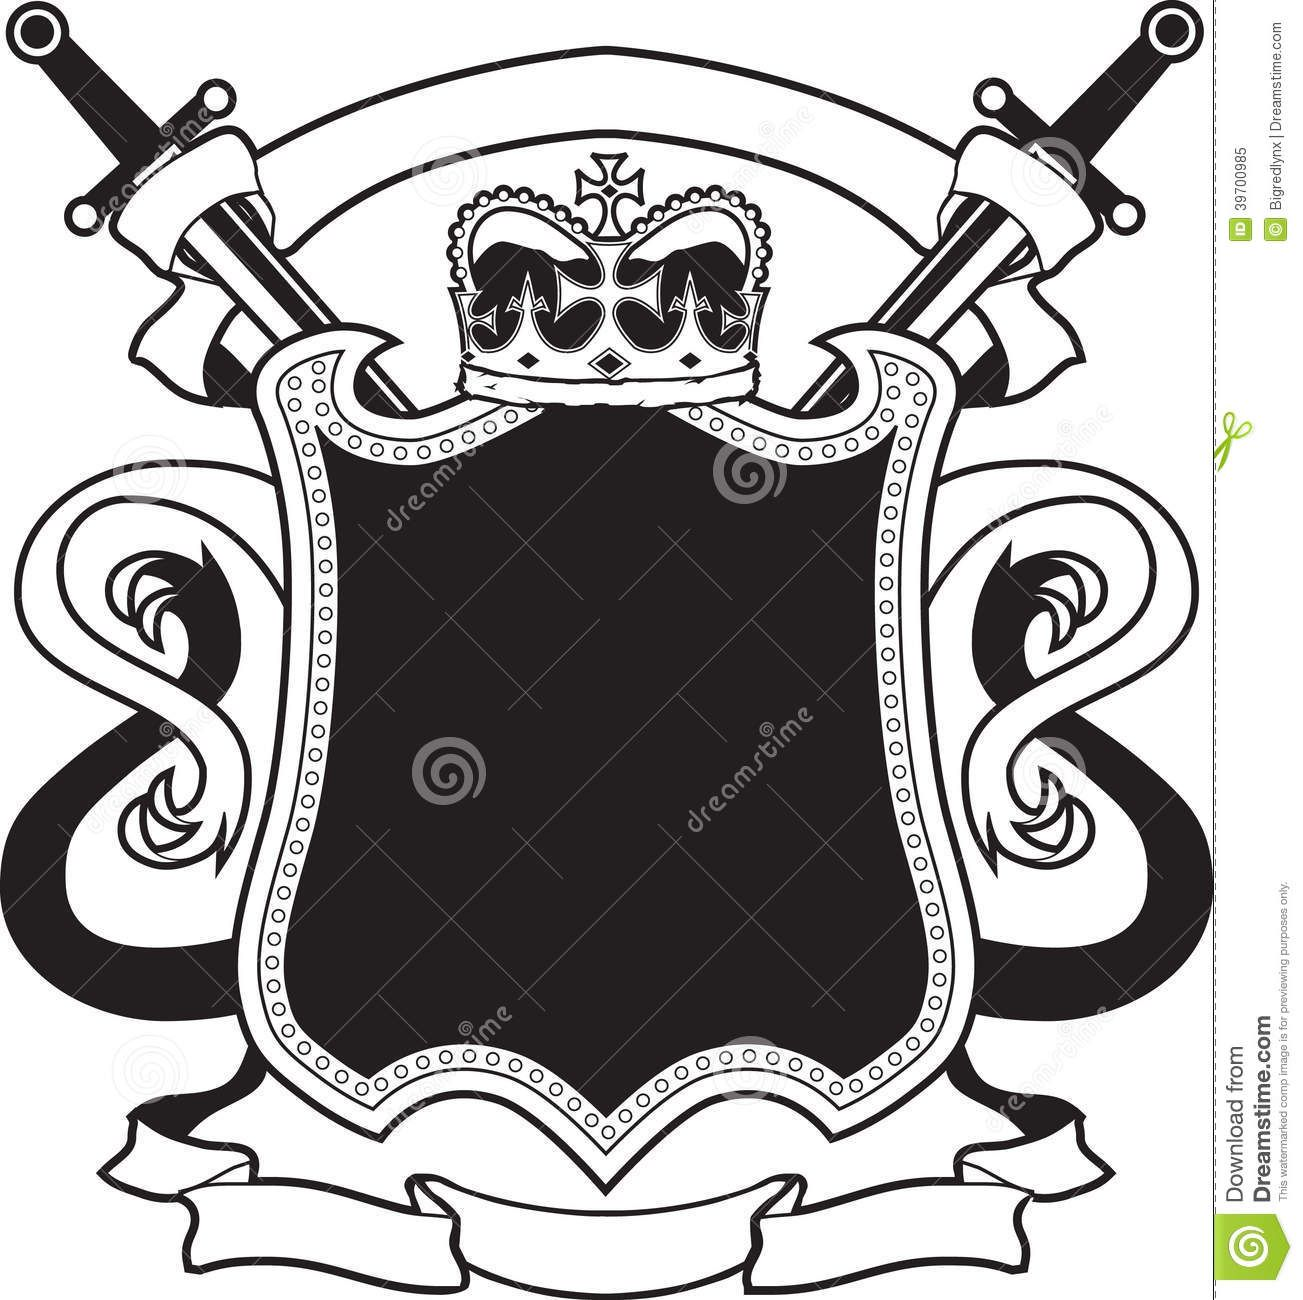 svg royalty free stock King s stock image. Vector crest scroll